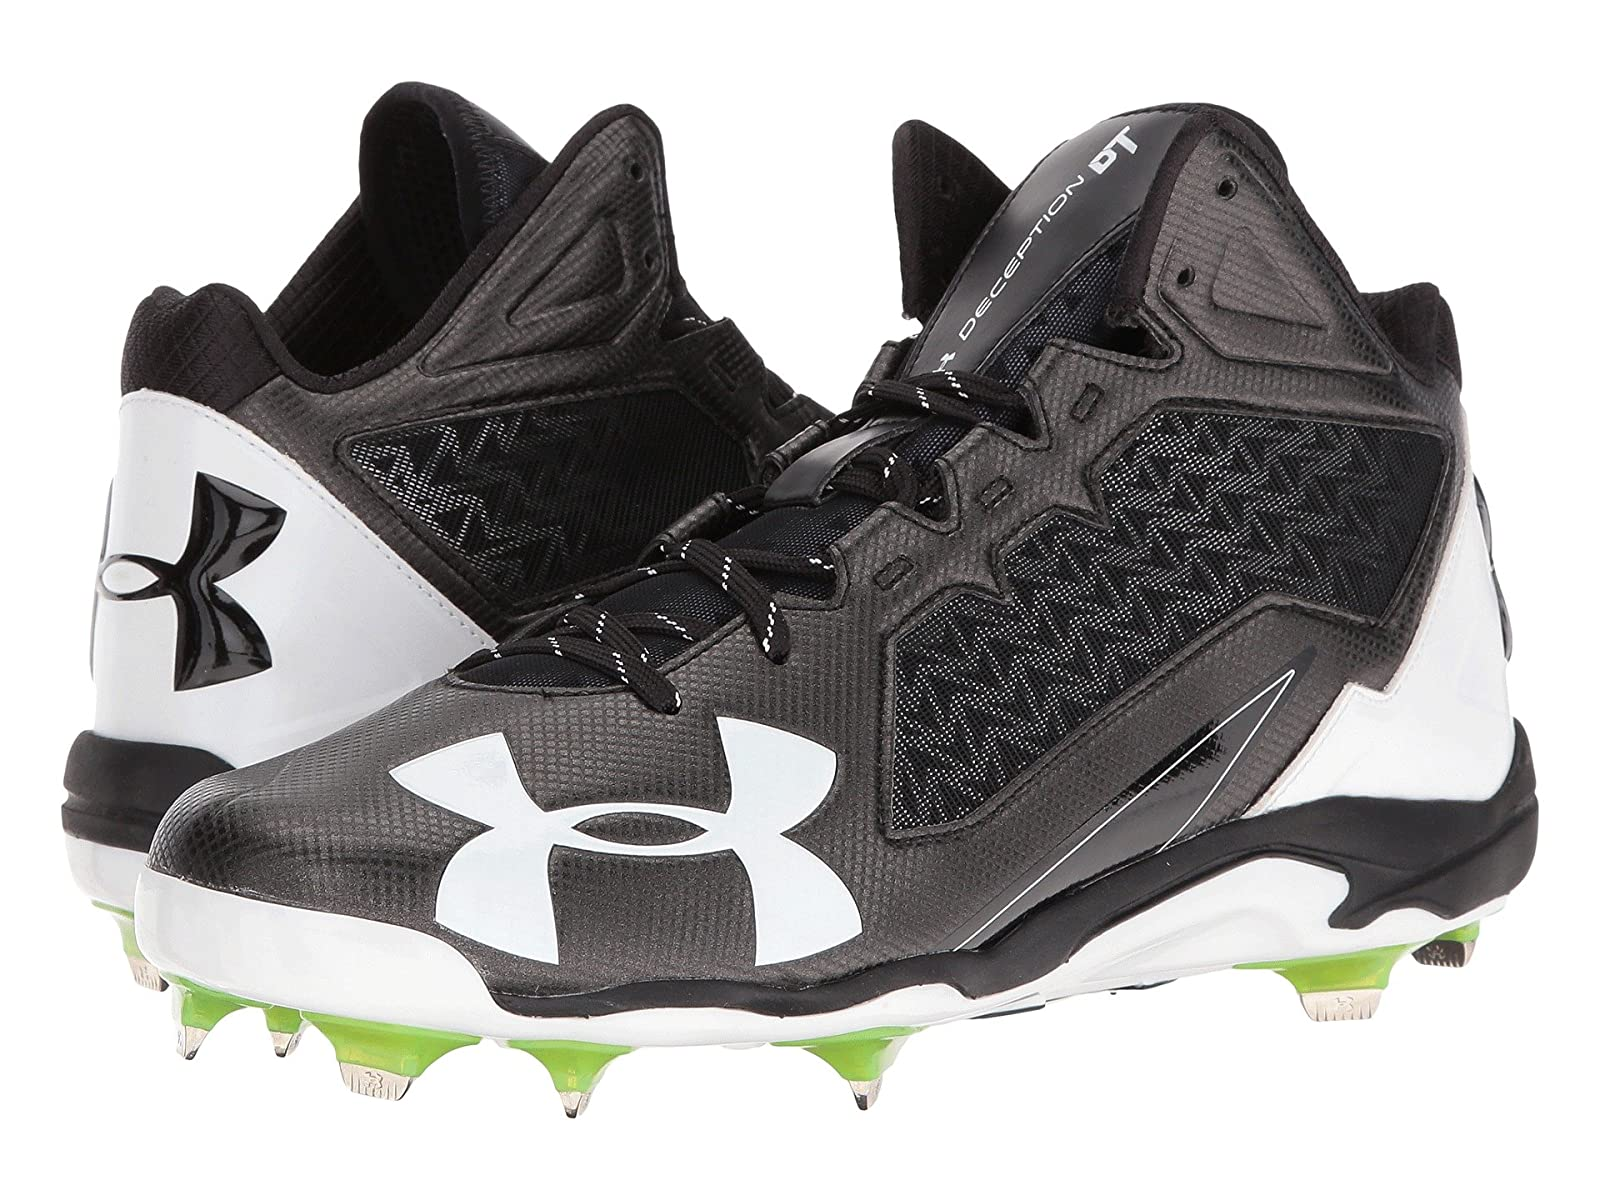 Under Armour UA Deception Mid DTCheap and distinctive eye-catching shoes